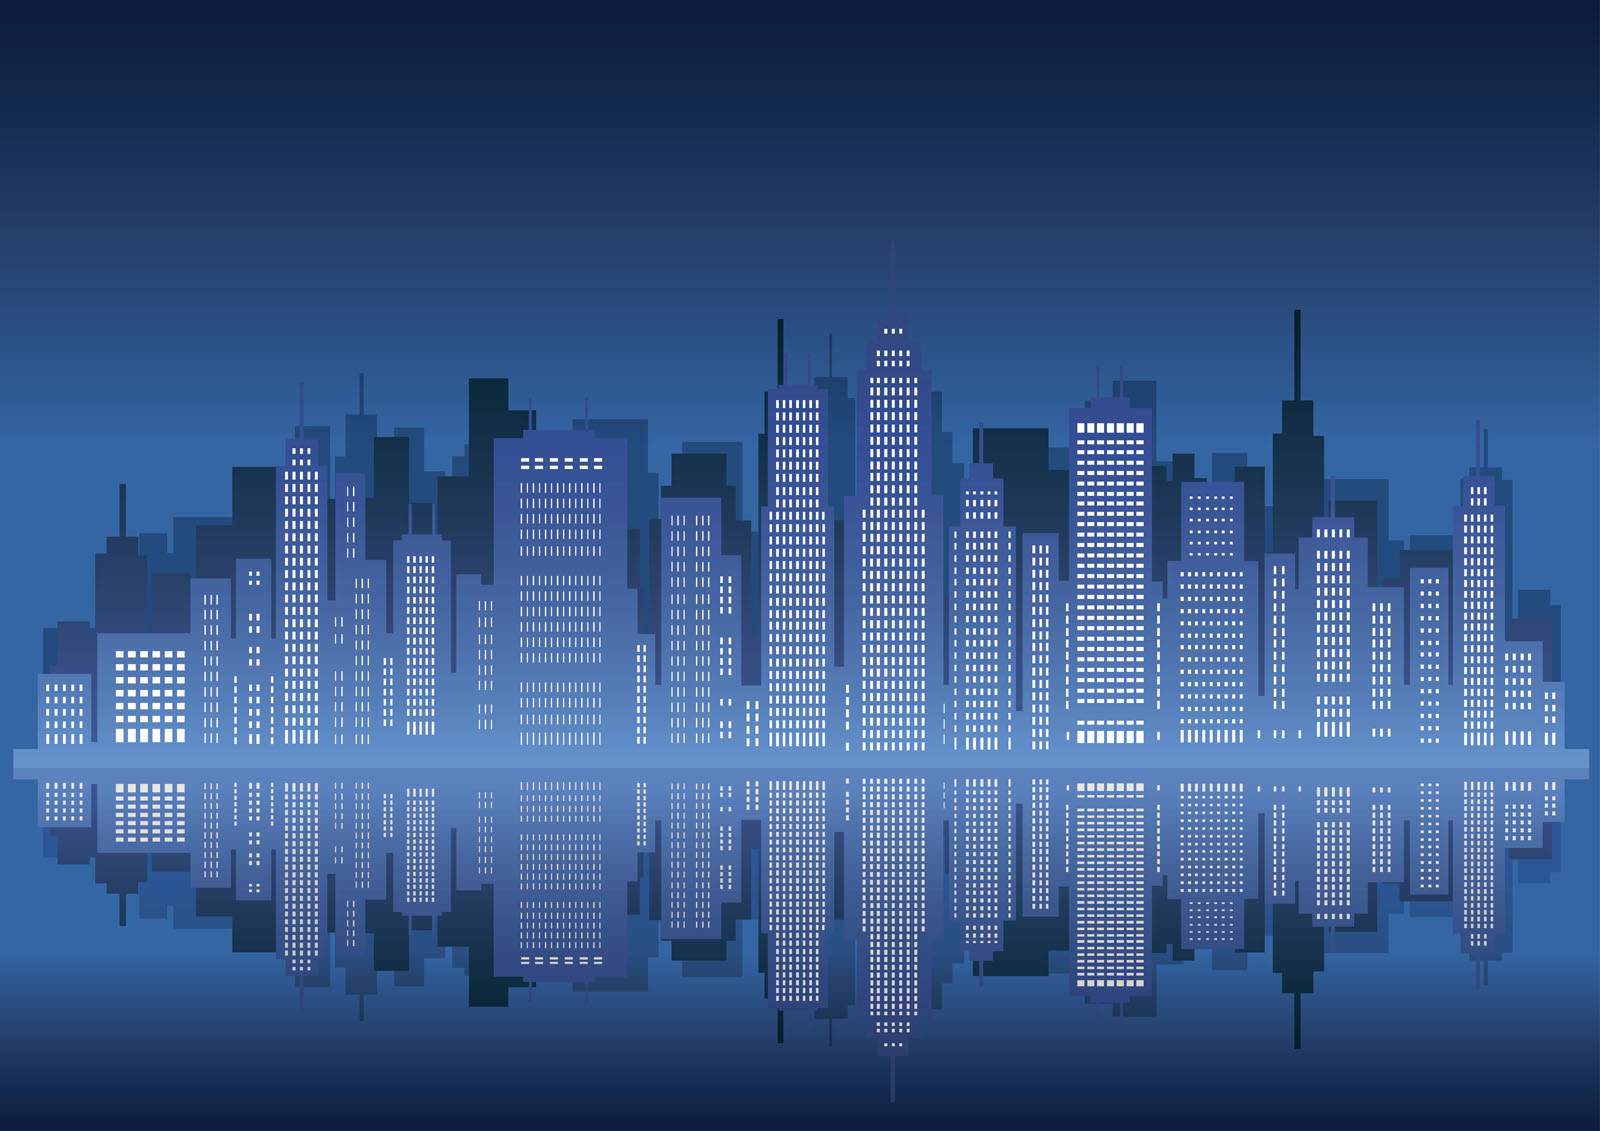 Clipart Water Free Illustration Cityscape With Skyscrapers Vector Illustration